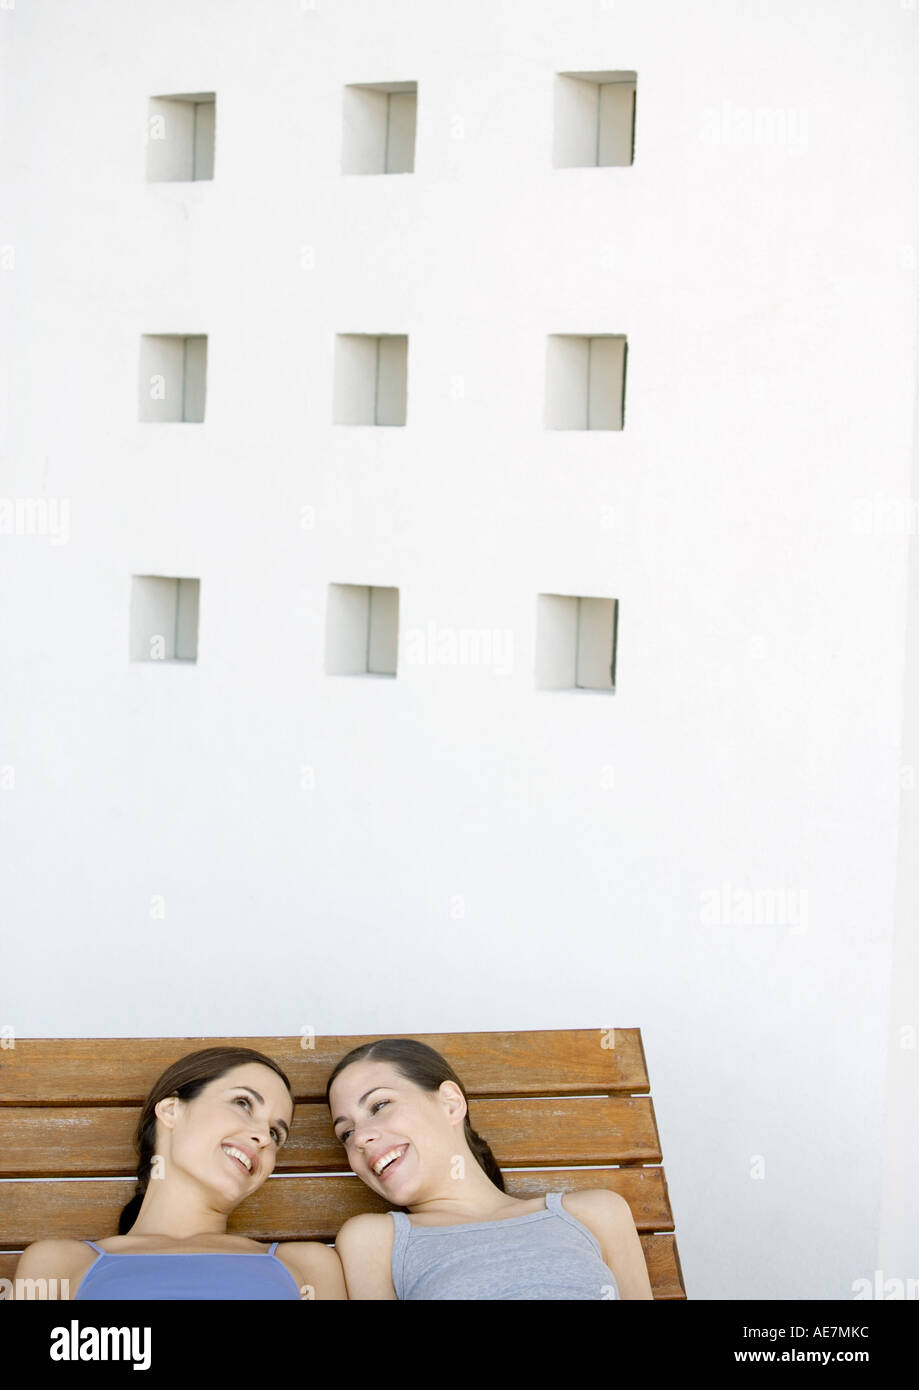 Two young women reclining and talking side by side - Stock Image